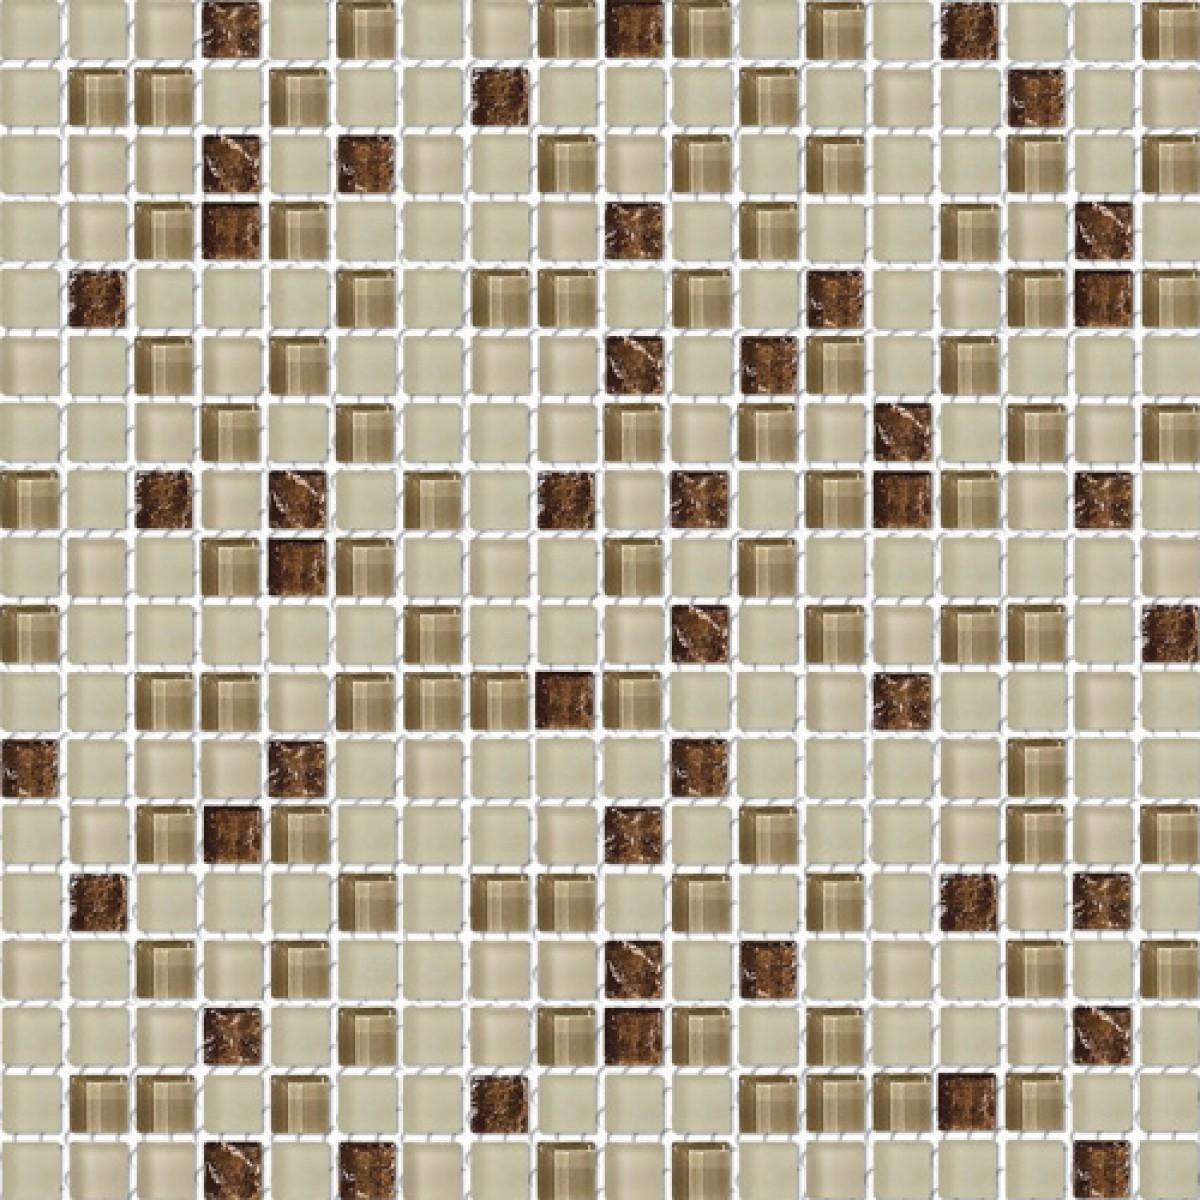 Kitchen Tiles Design Texture: Brown Cocoa Frosted Blend Glass Mosaic Textured Tile Mesh